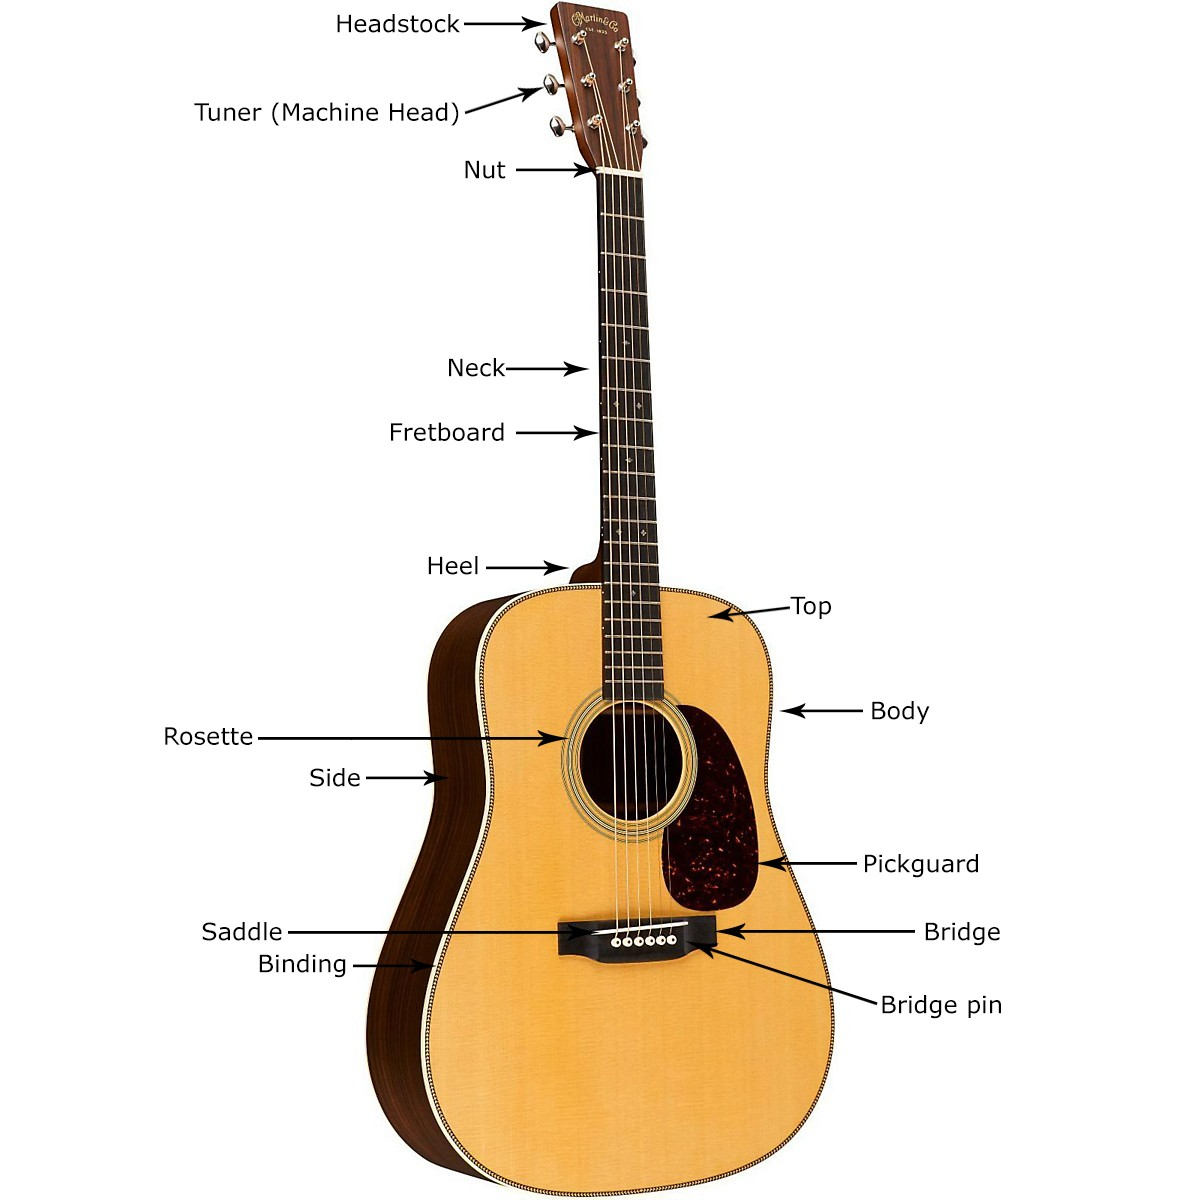 Acoustic Guitar Anatomy and Parts